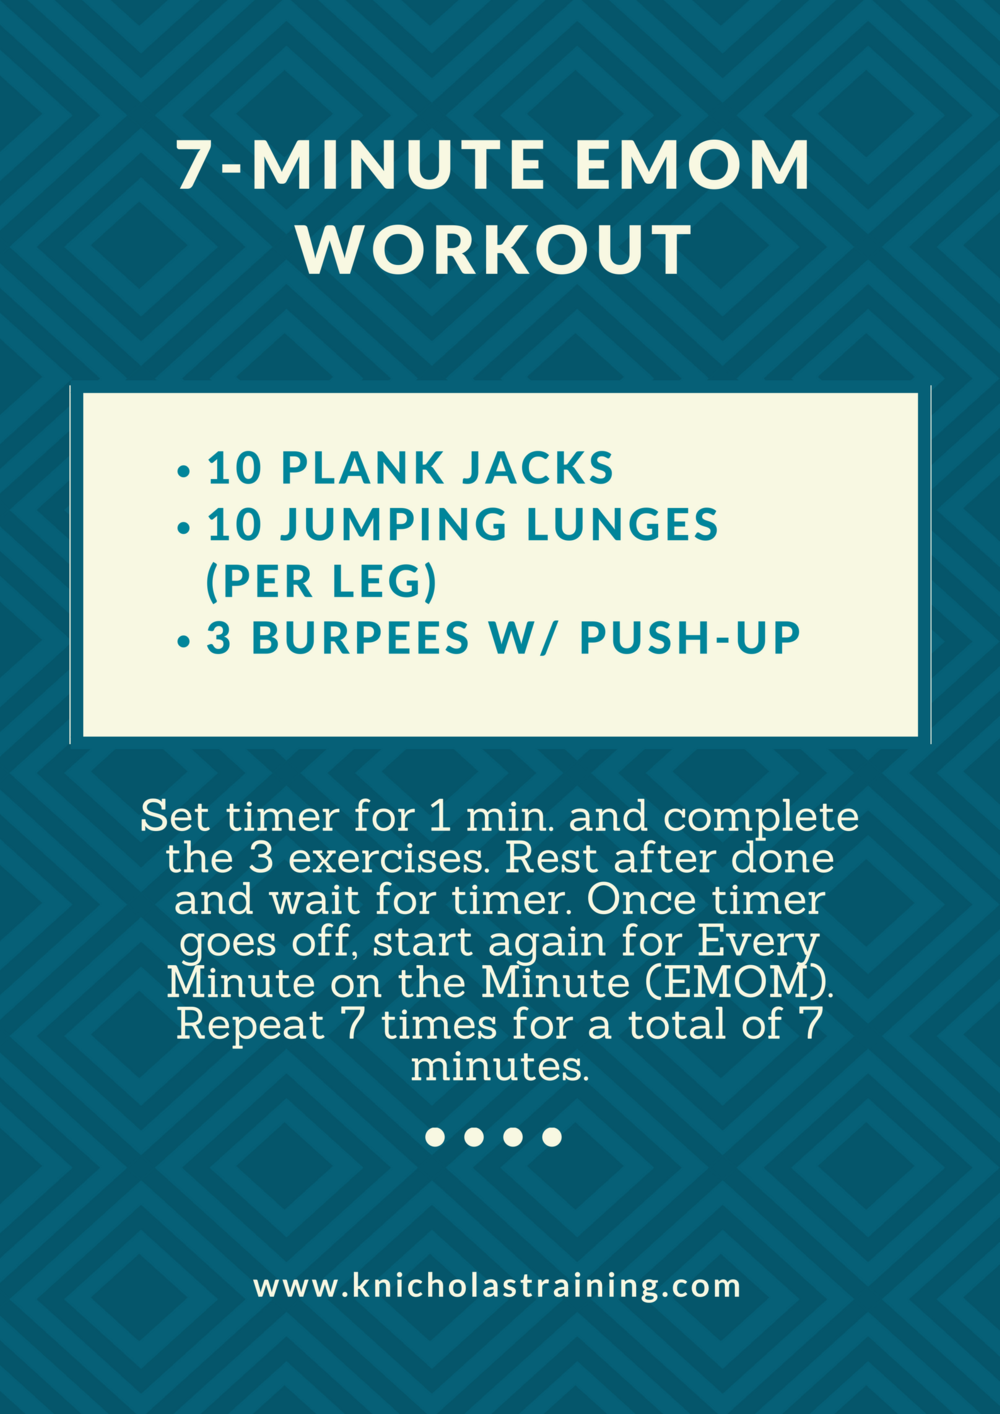 7-Minute EMOM Workout.png